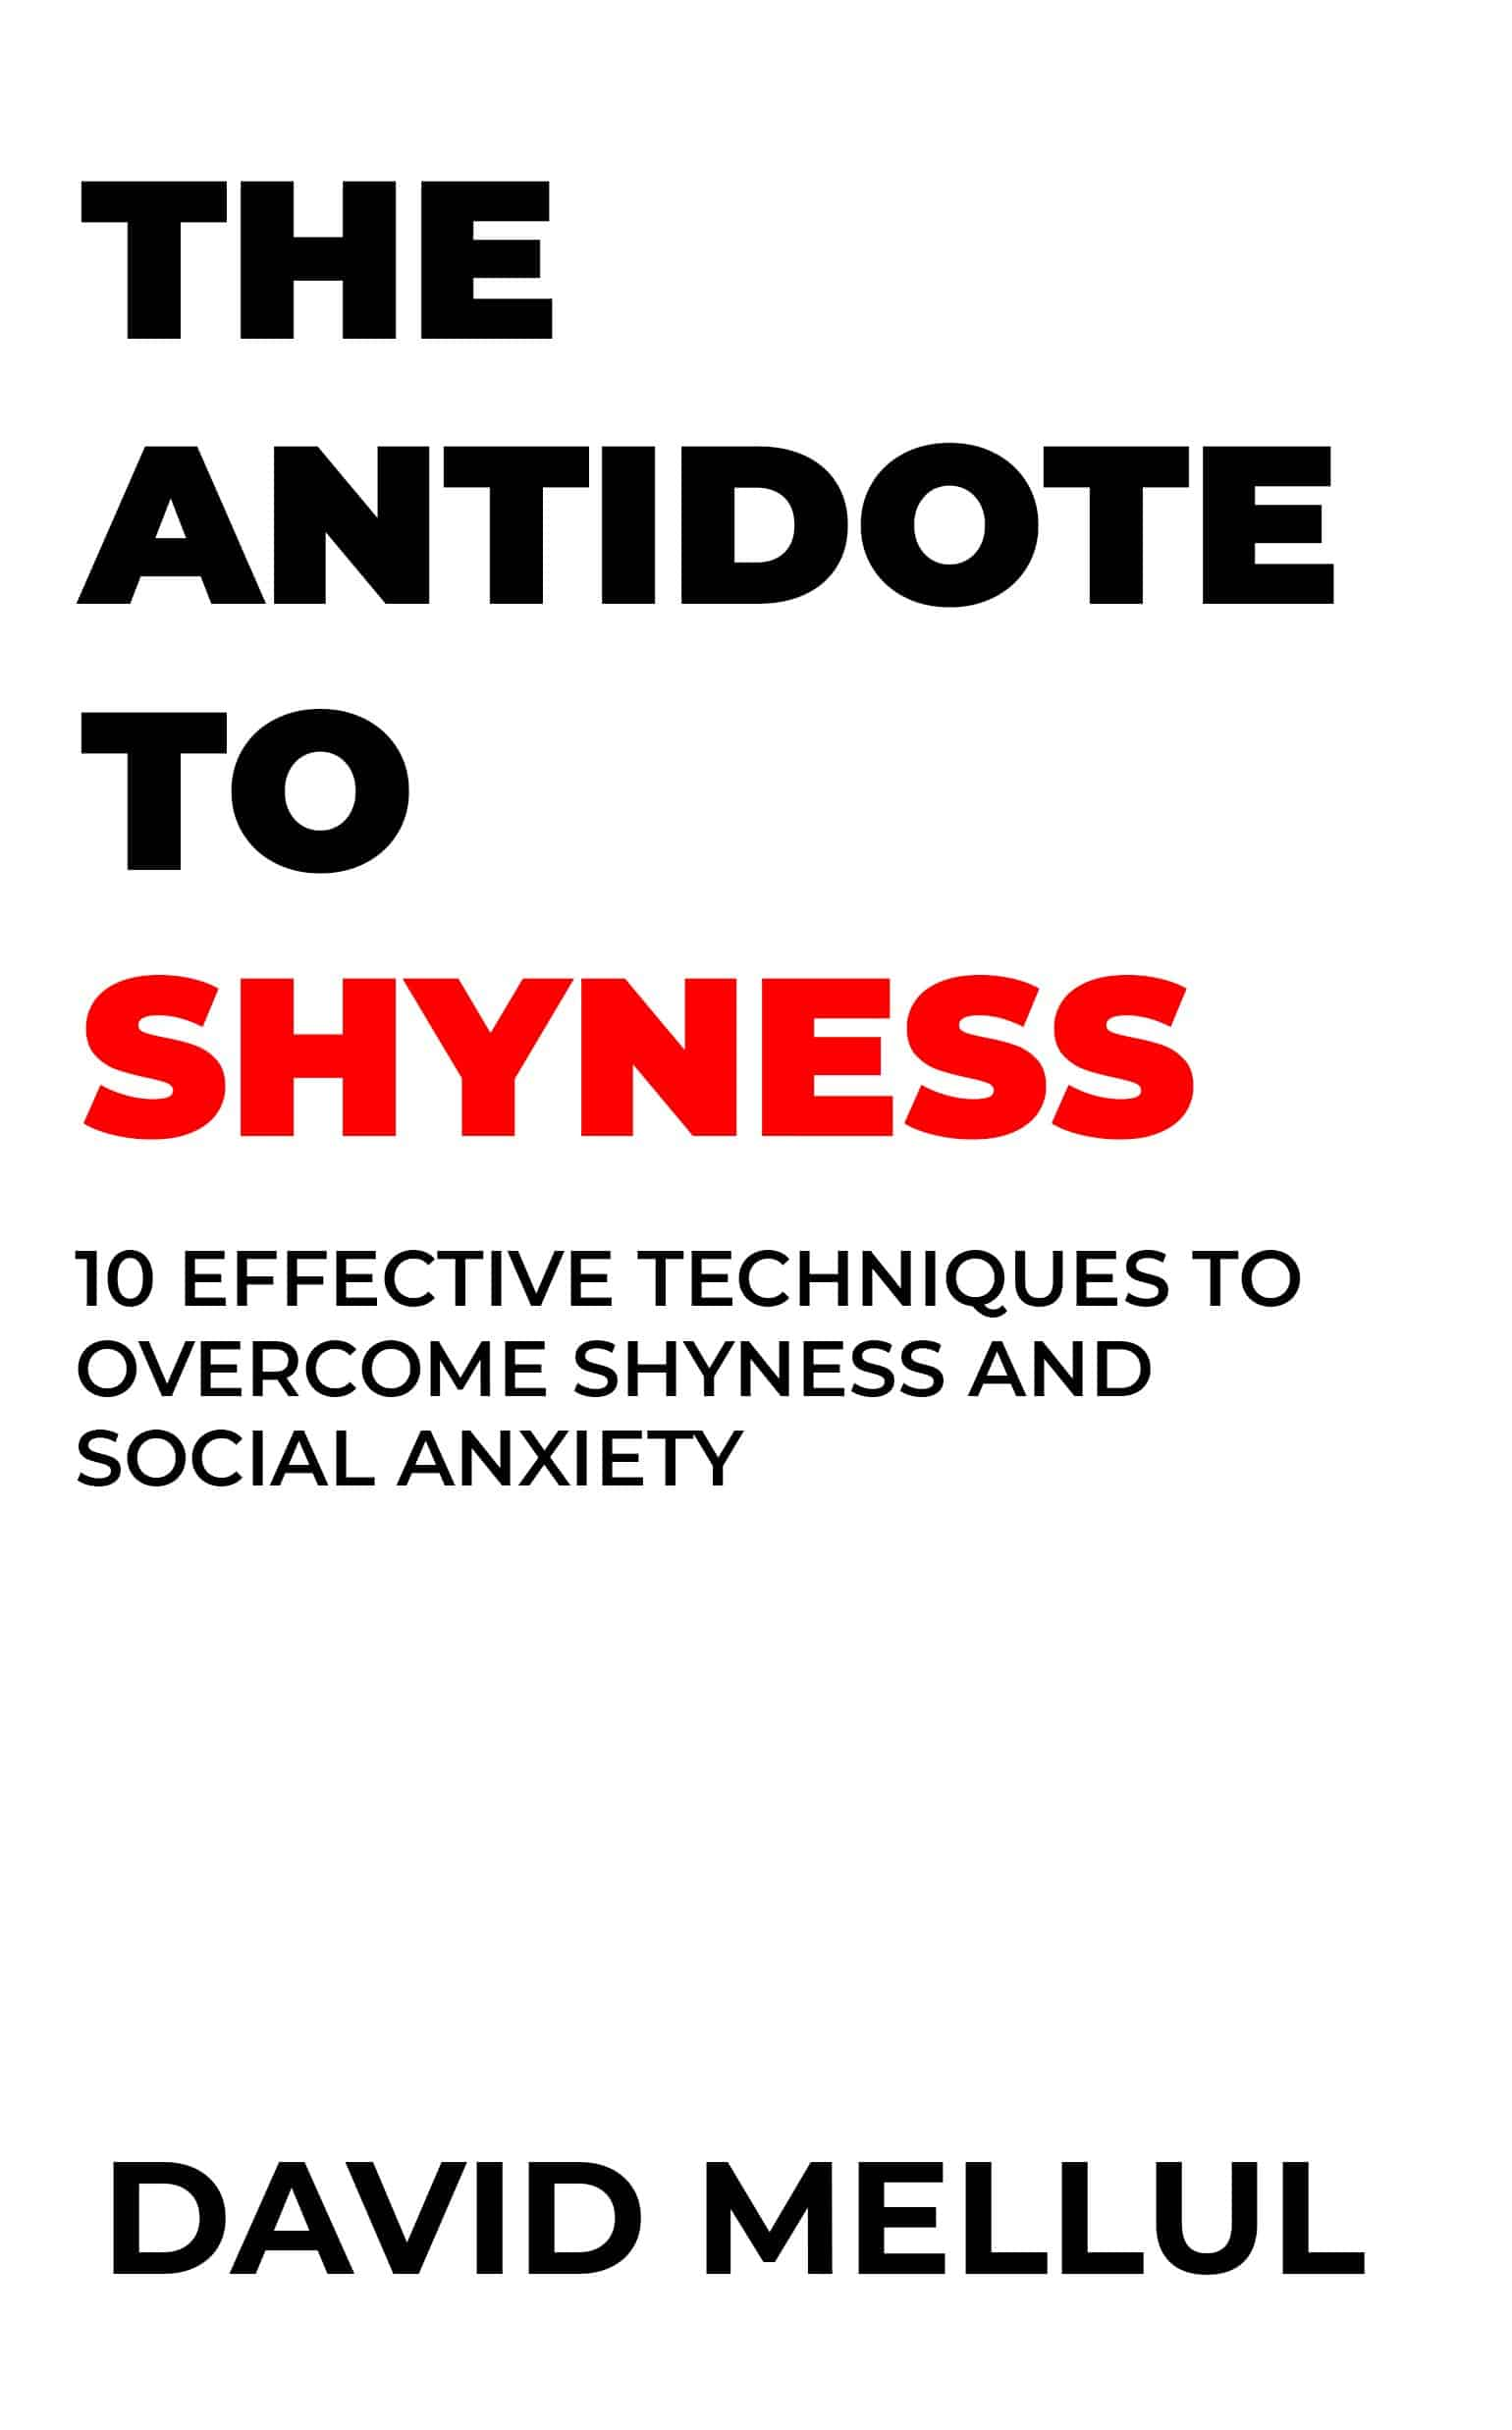 The Antidote to Shyness: 10 Effective Techniques to Overcome Shyness and Social Anxiety